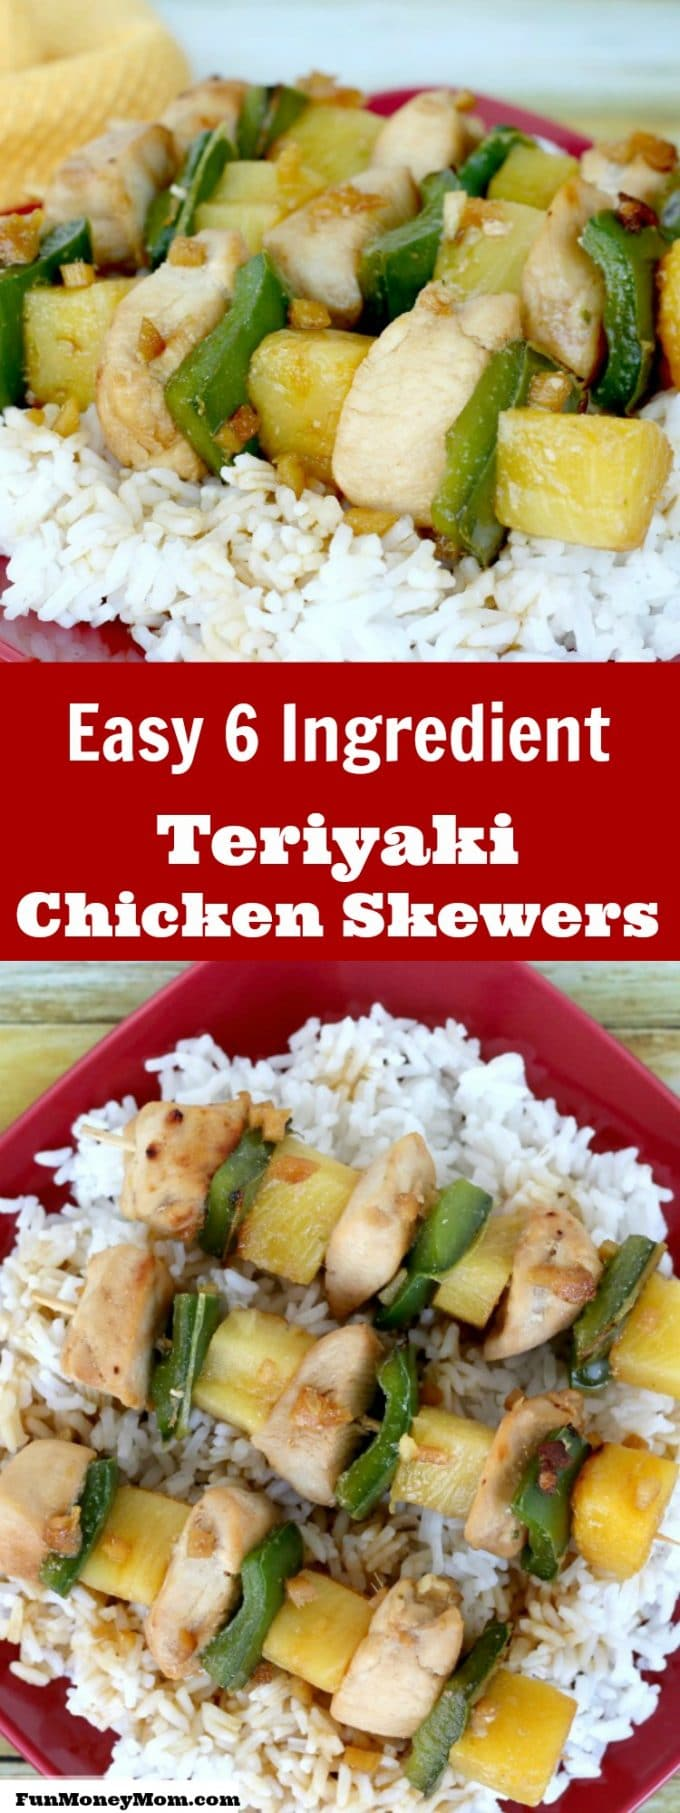 Looking for an easy dinner recipe? These 6 ingredient teriyaki chicken skewers are the best quick and easy recipe for a busy mom!